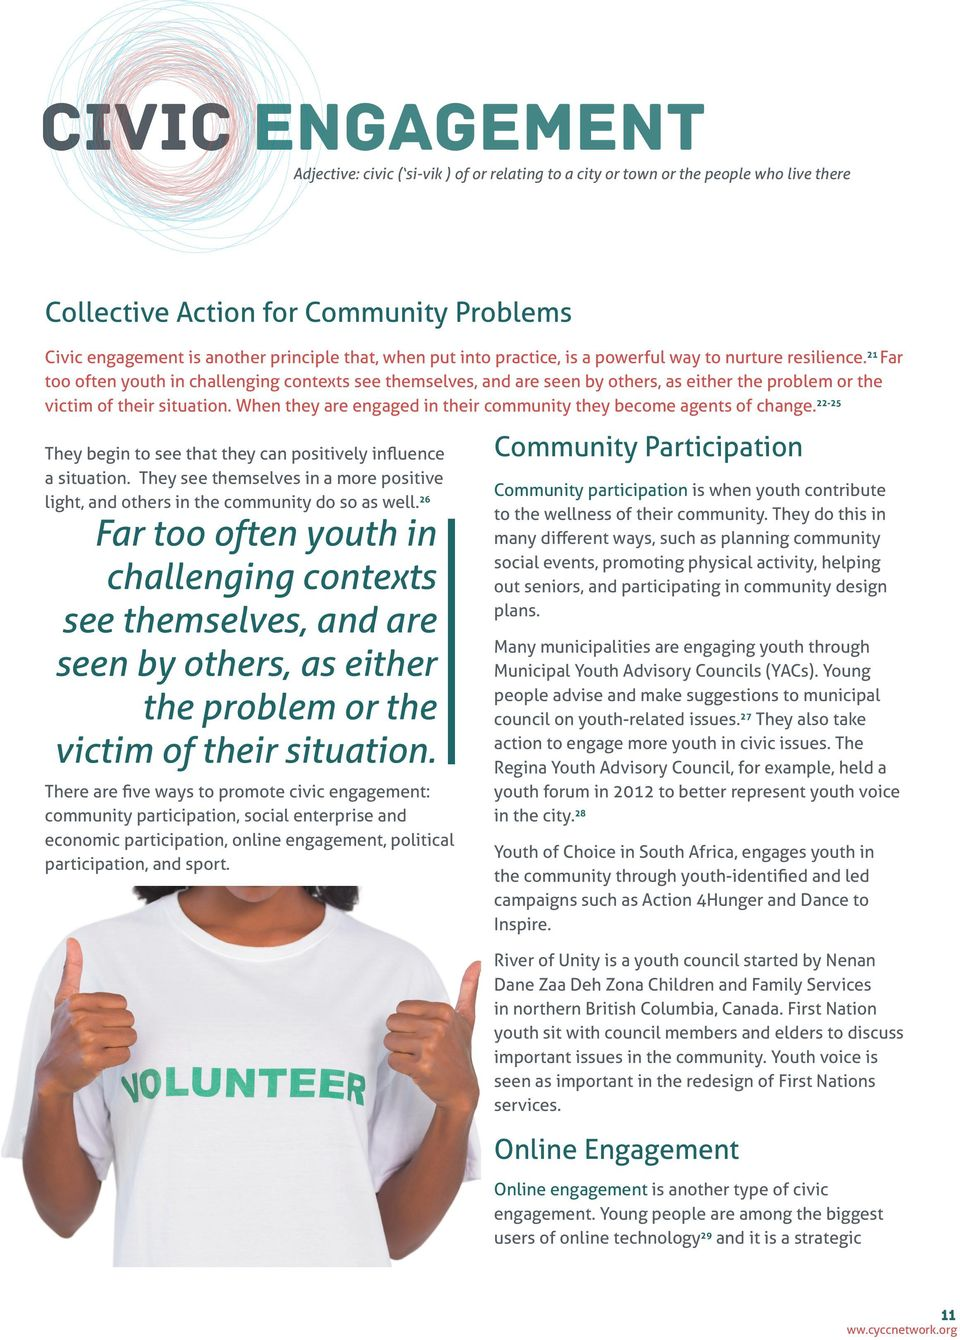 21 Far too often youth in challenging contexts see themselves, and are seen by others, as either the problem or the victim of their situation.